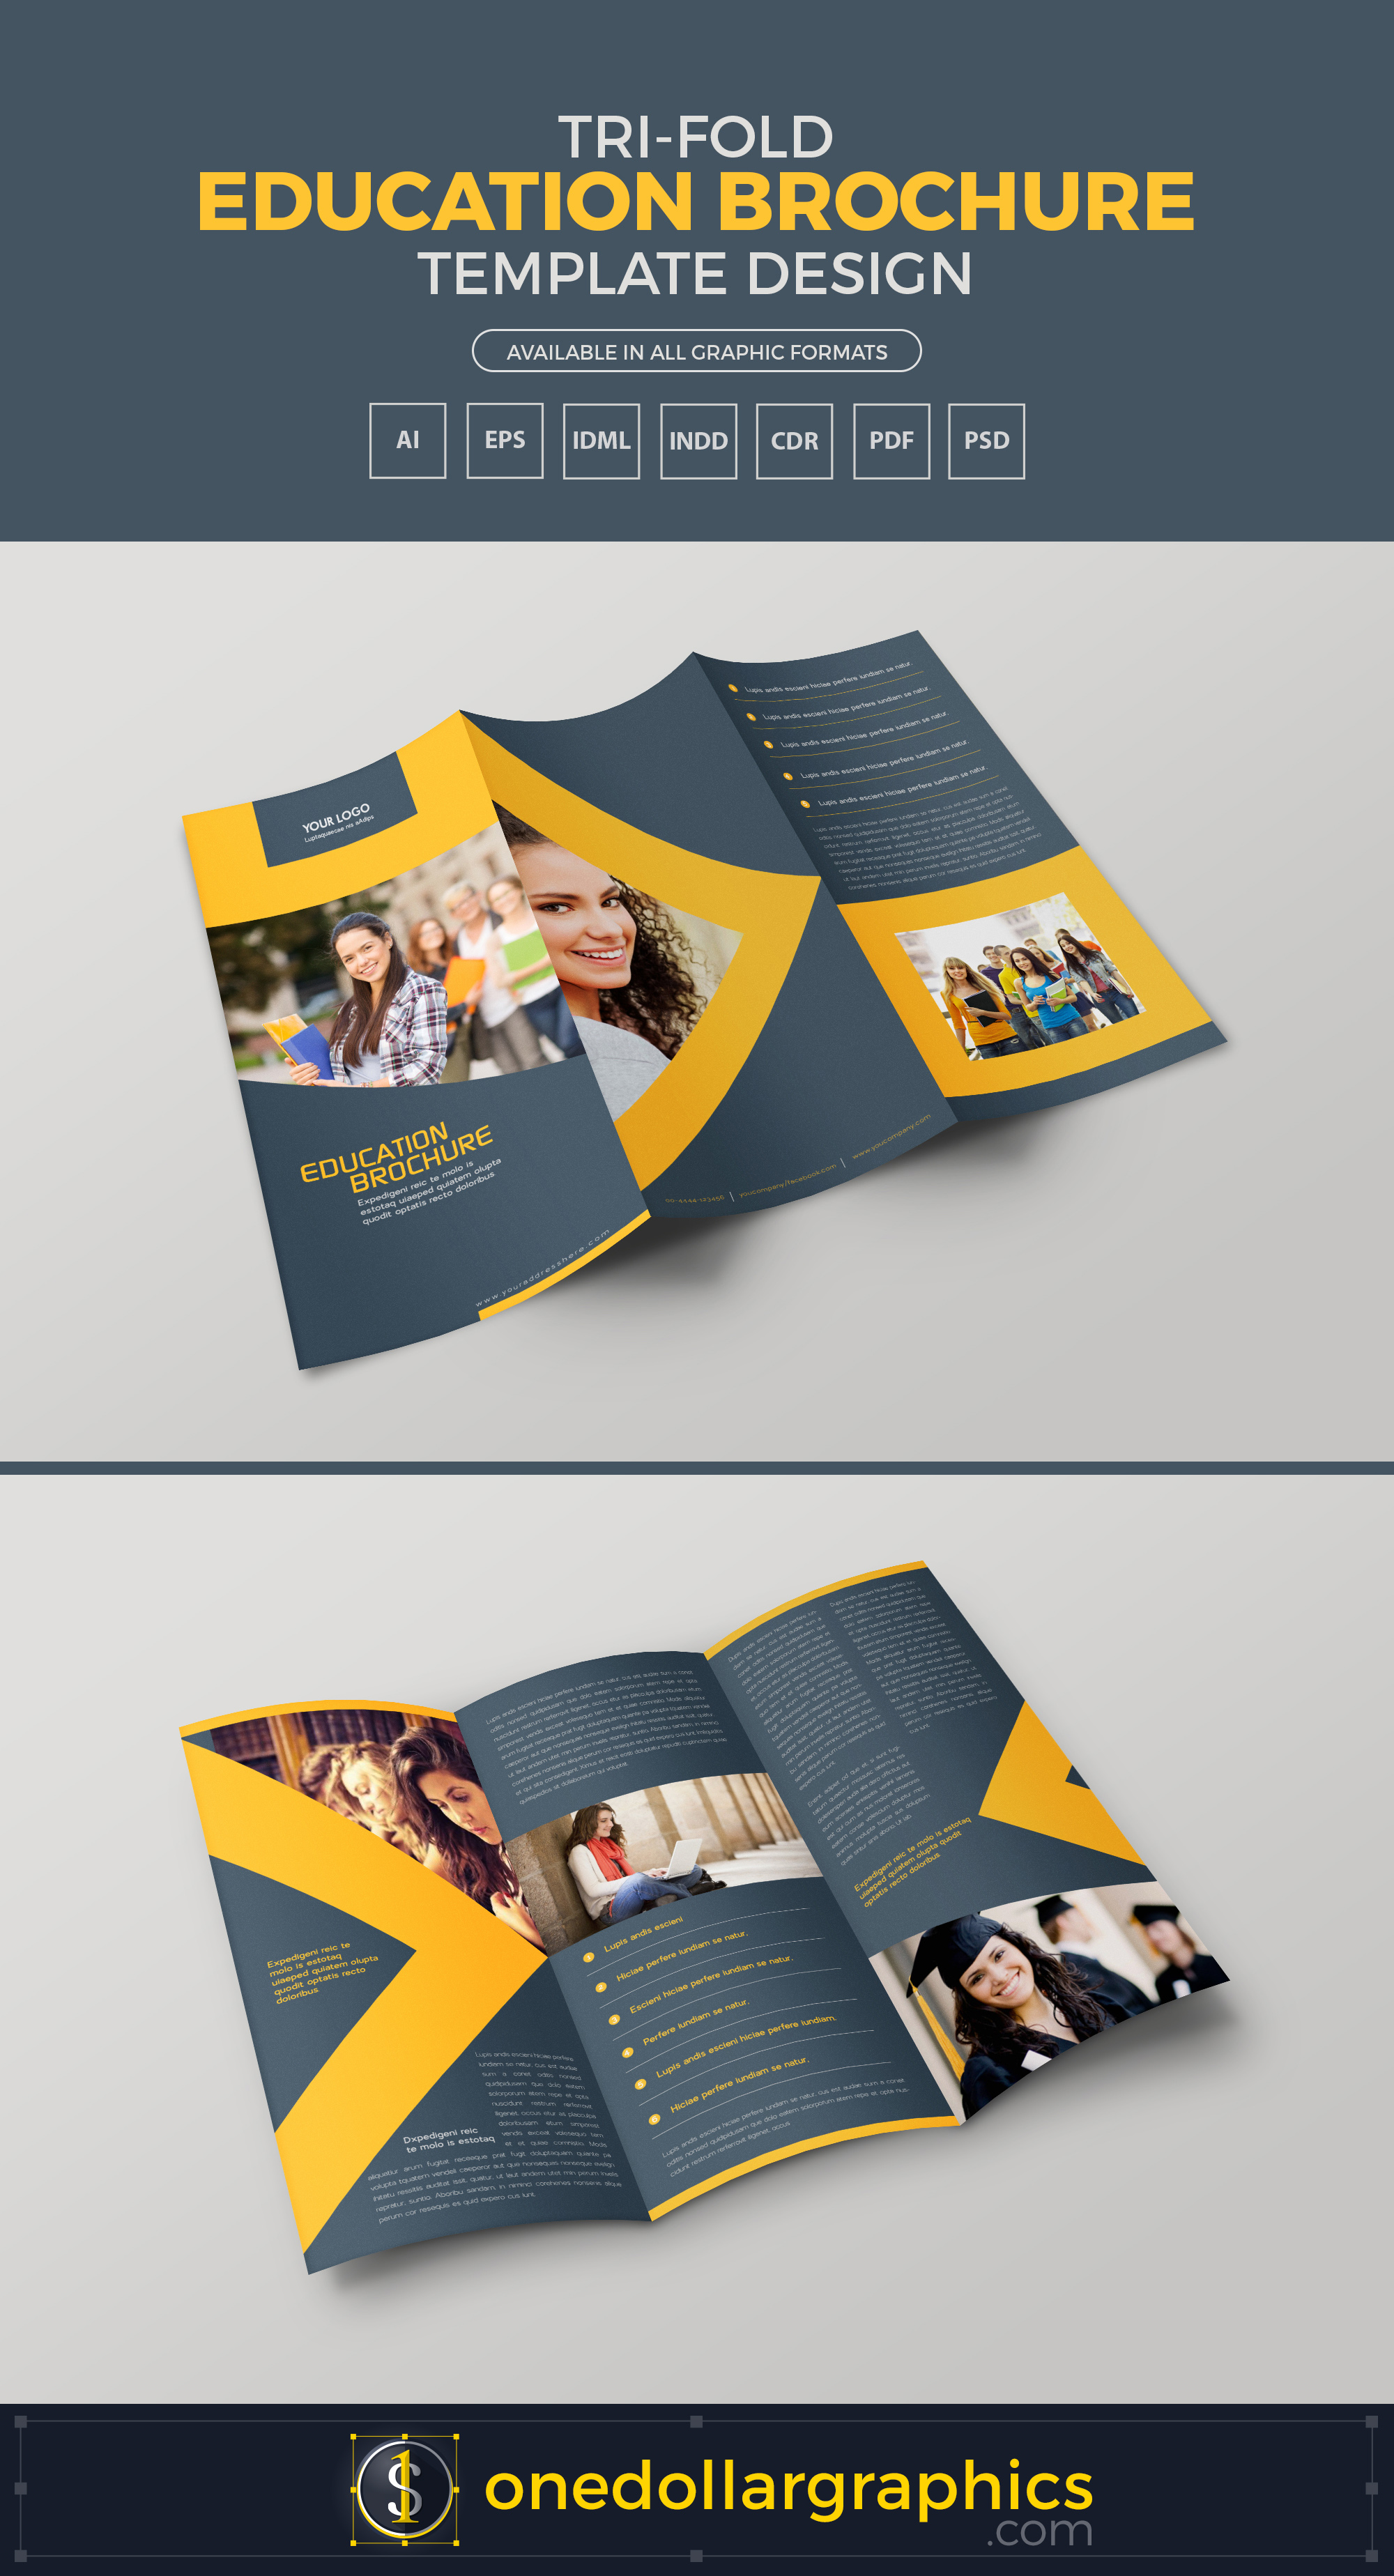 education brochure templates - tri fold education brochure template design in ai eps